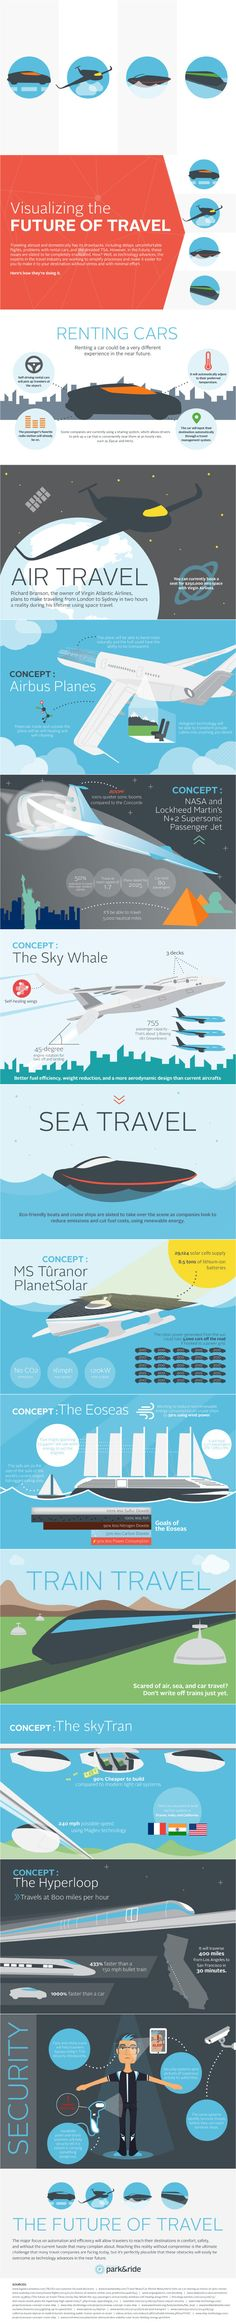 Visualizing The Future of Travel #infographic #Future #Travel #Technology